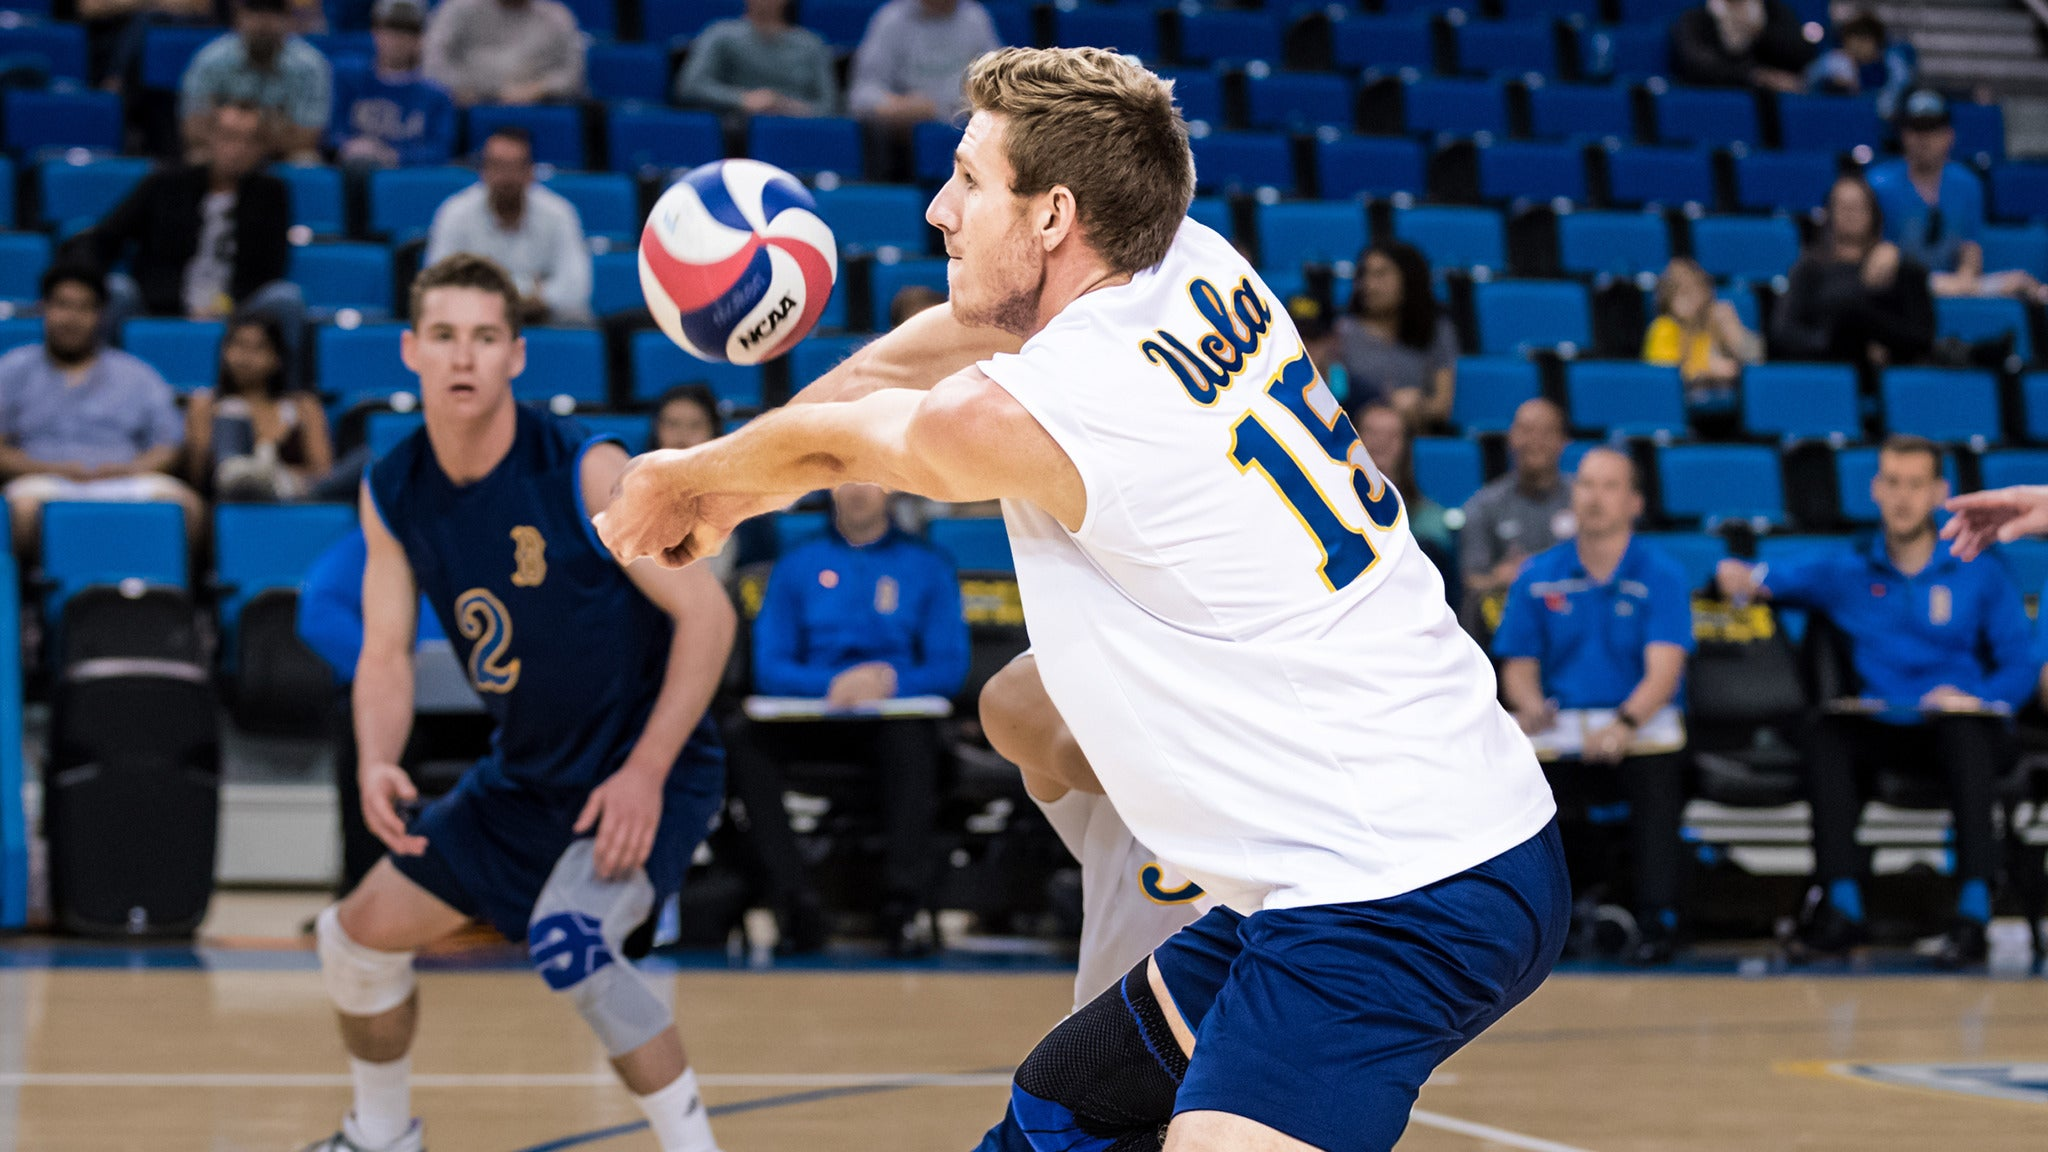 UCLA Bruins Men's Volleyball v. Long Beach State 49ers